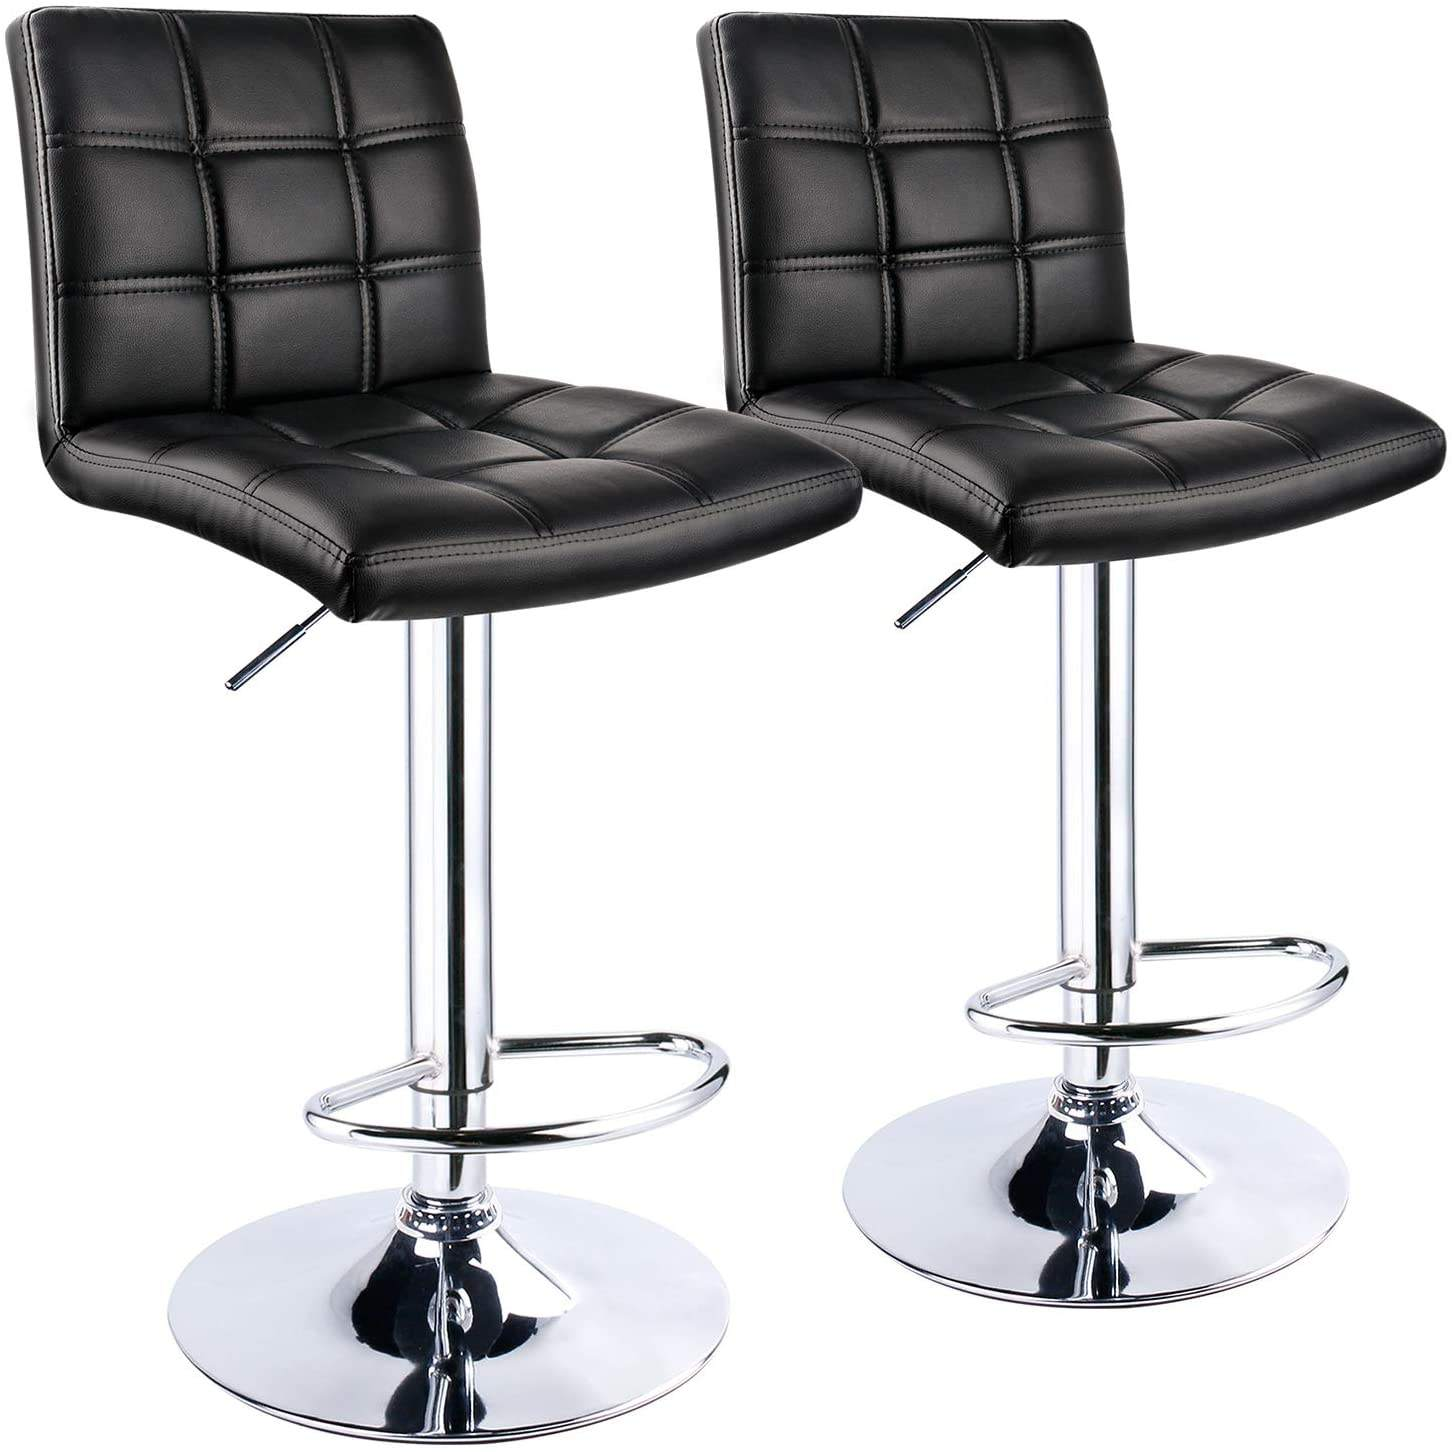 Modern Bar Stools Leatherette Exterior Double Needle Sewing Height Adjustable Chrome Footrest and Base Bar Chairs